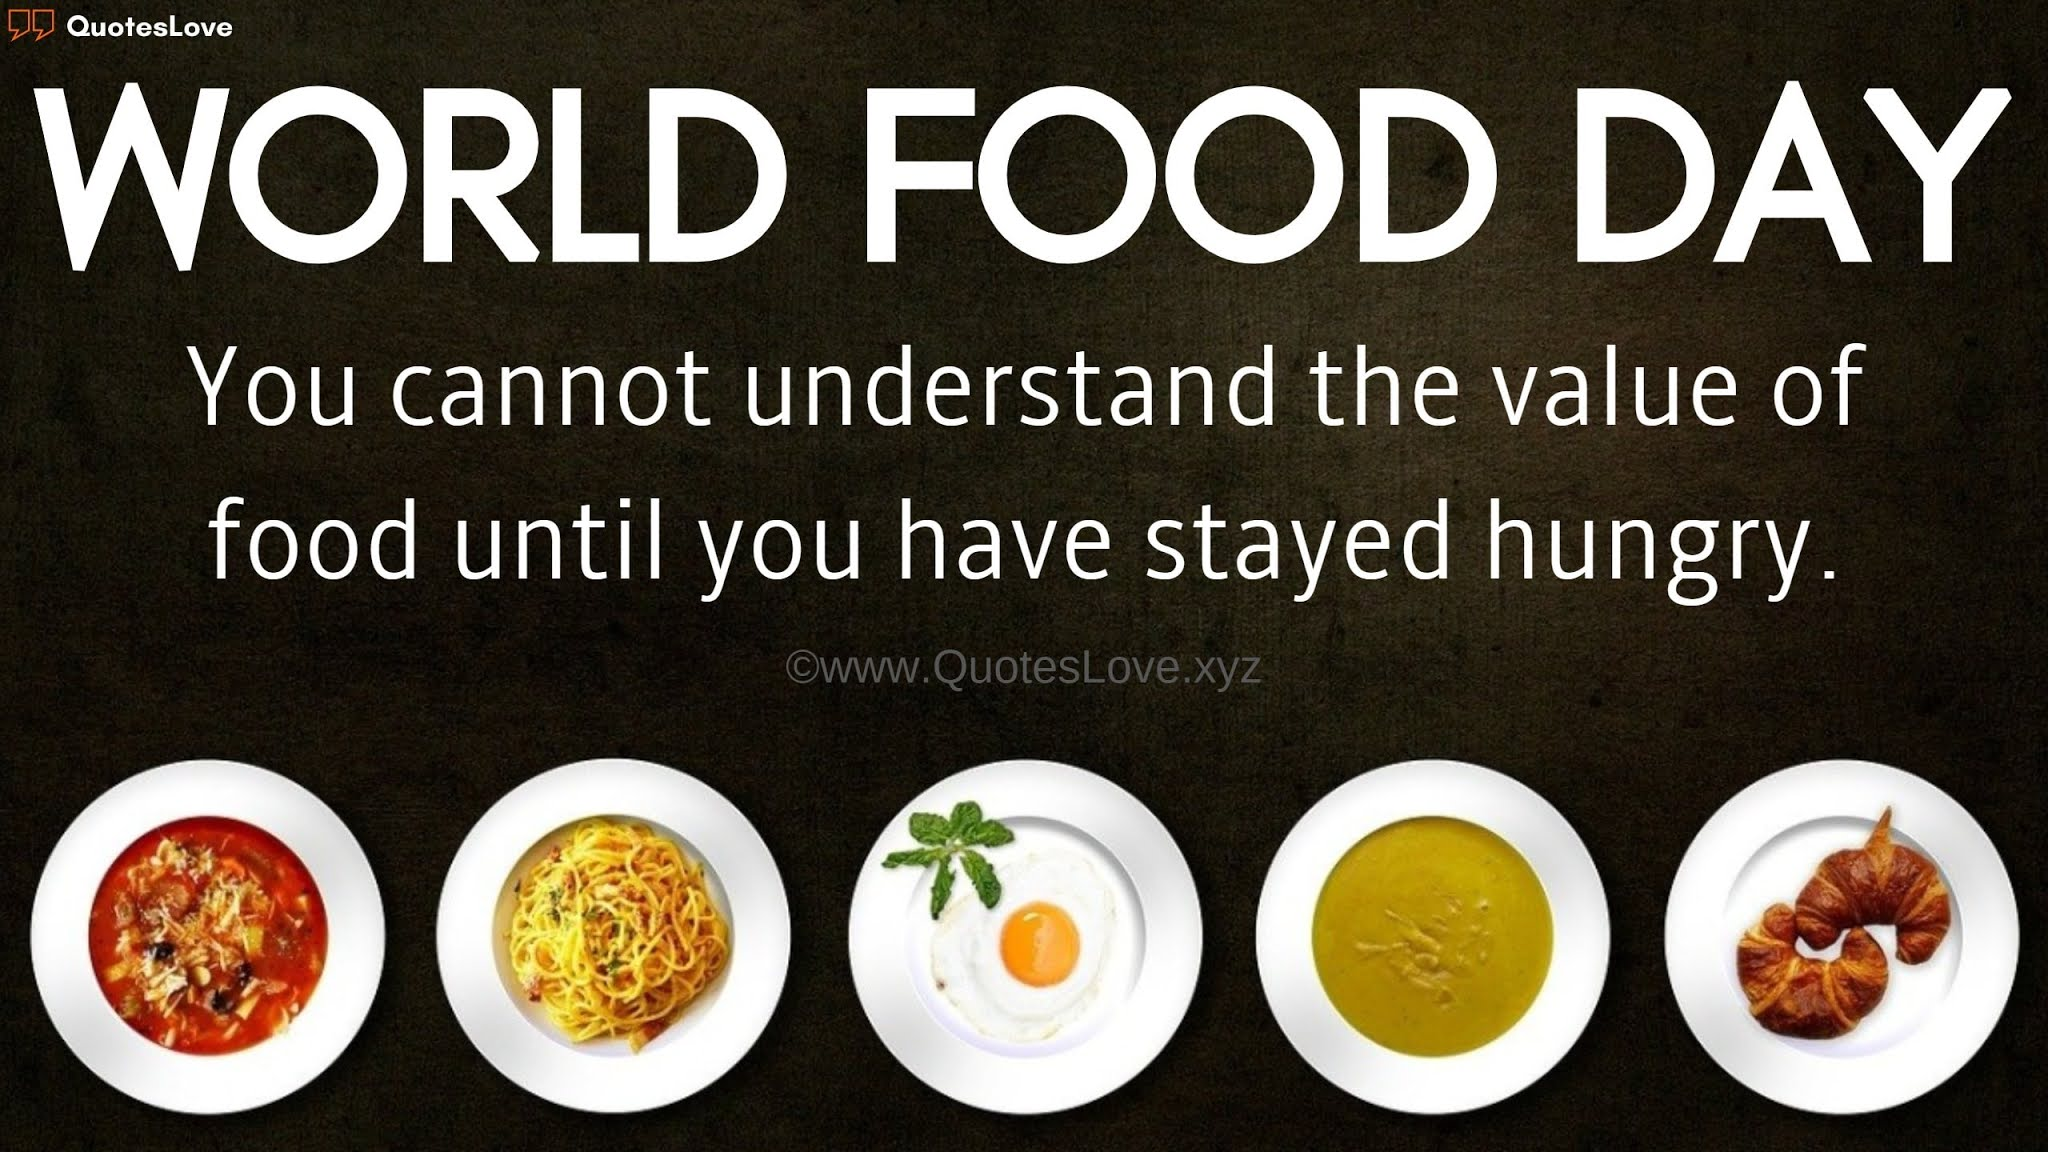 World FOOD Day Quotes, Sayings, Slogan, Wishes, Greetings, Images, Pictures, Poster